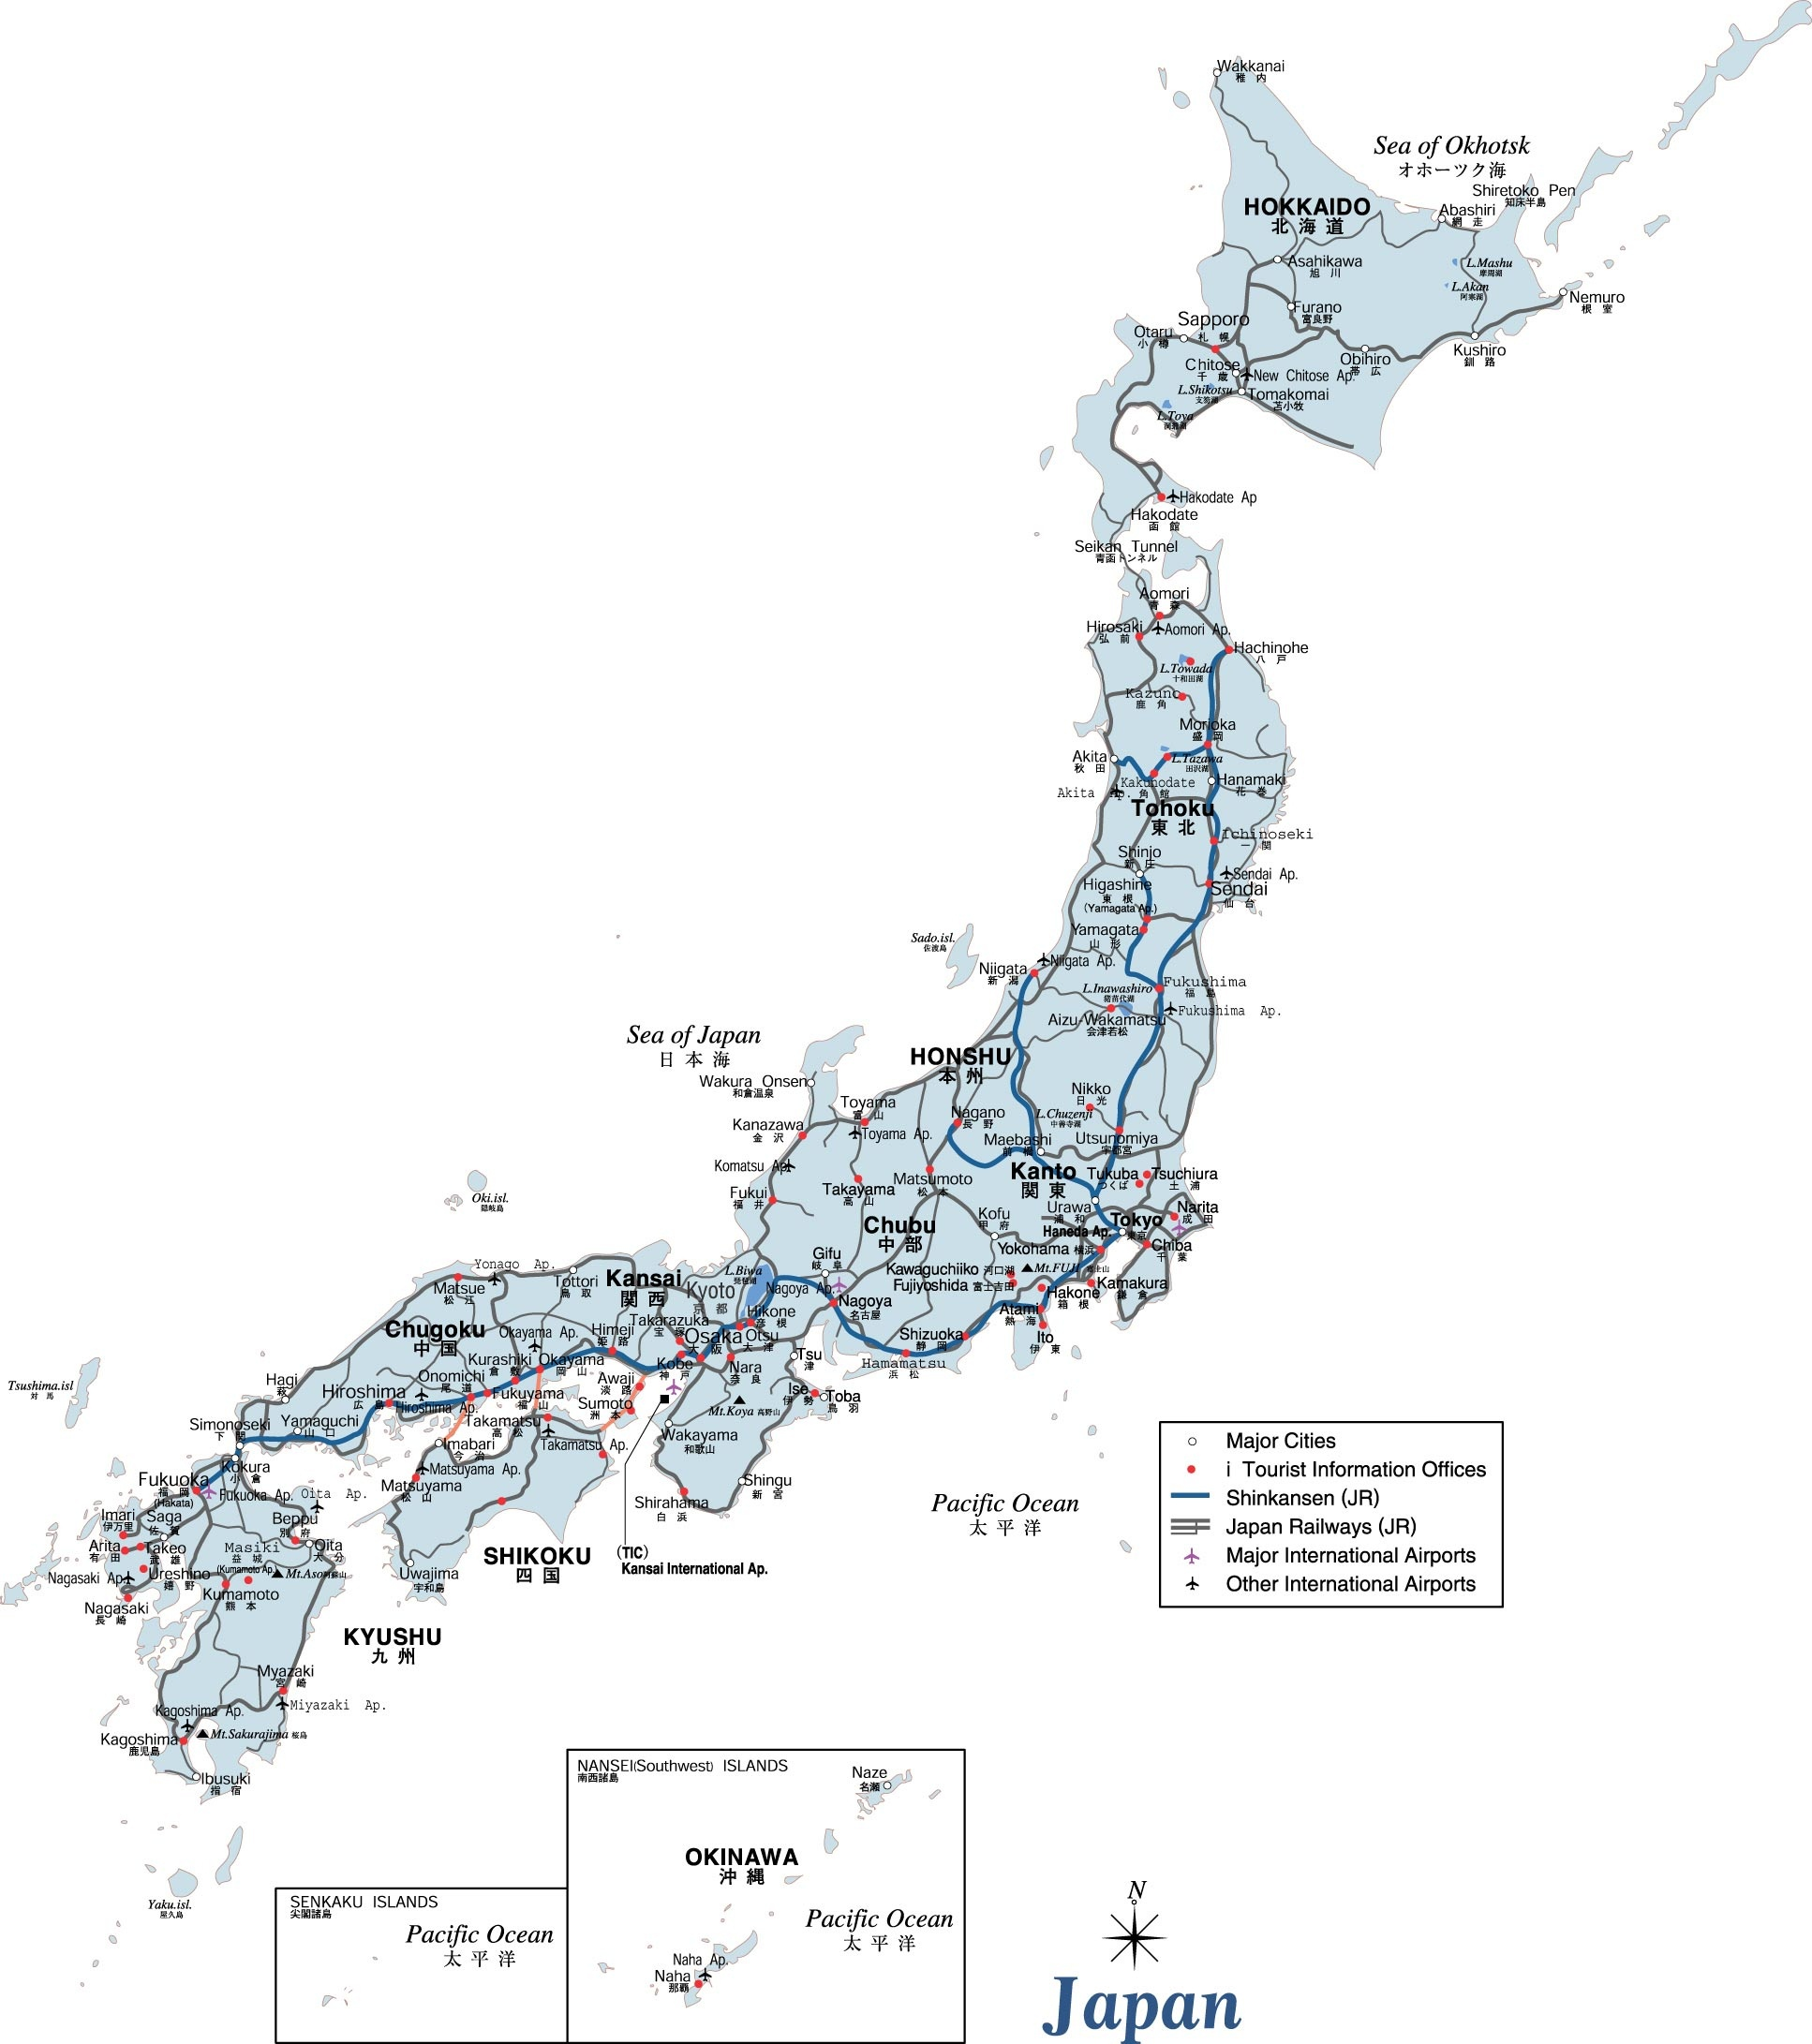 Japan Maps | Printable Maps Of Japan For Download - Free Printable Map Of Japan